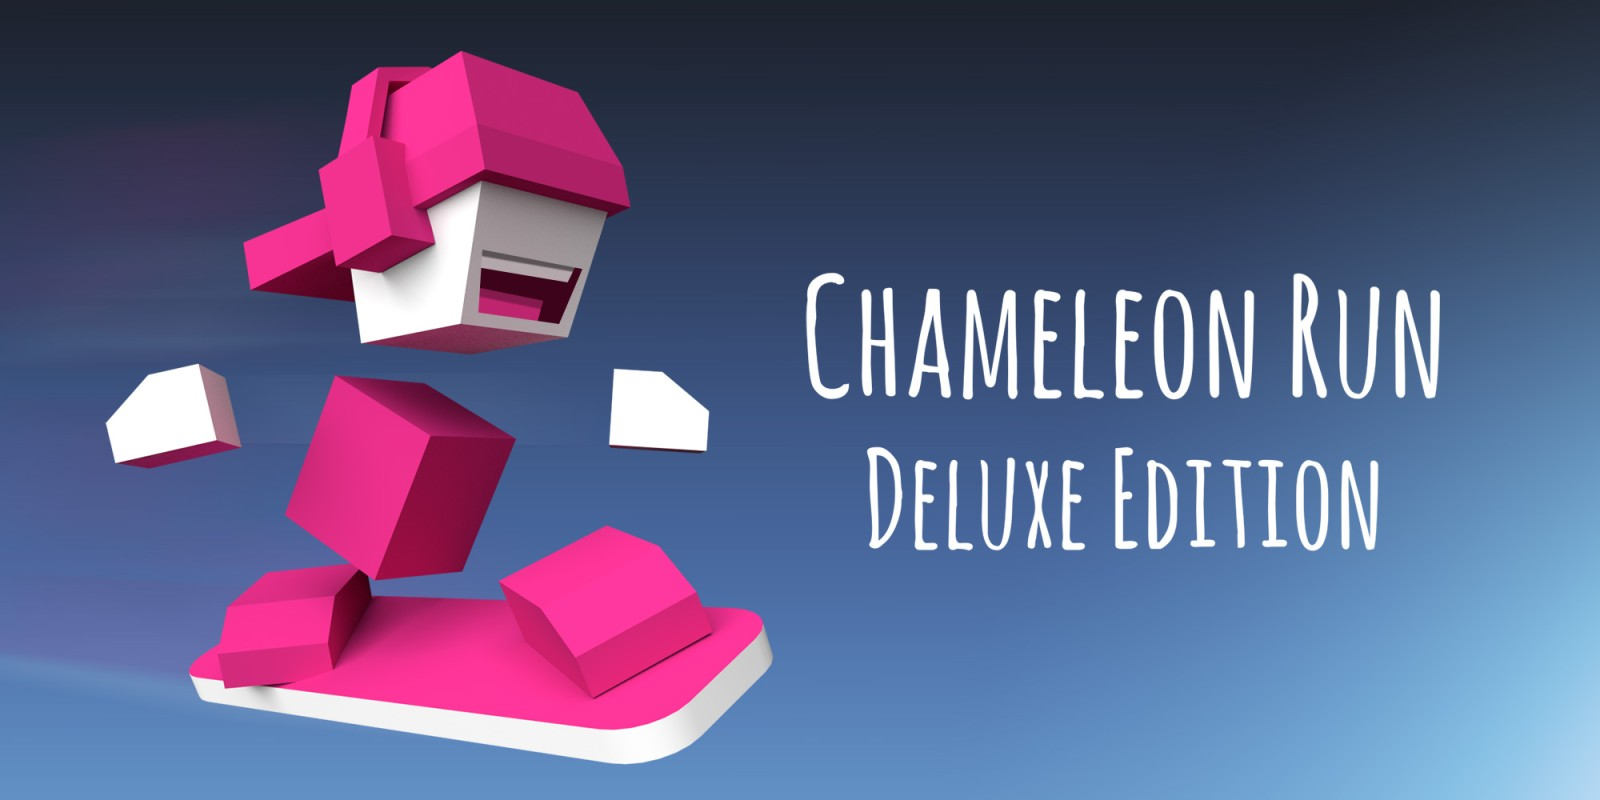 Chameleon Run Deluxe Edition